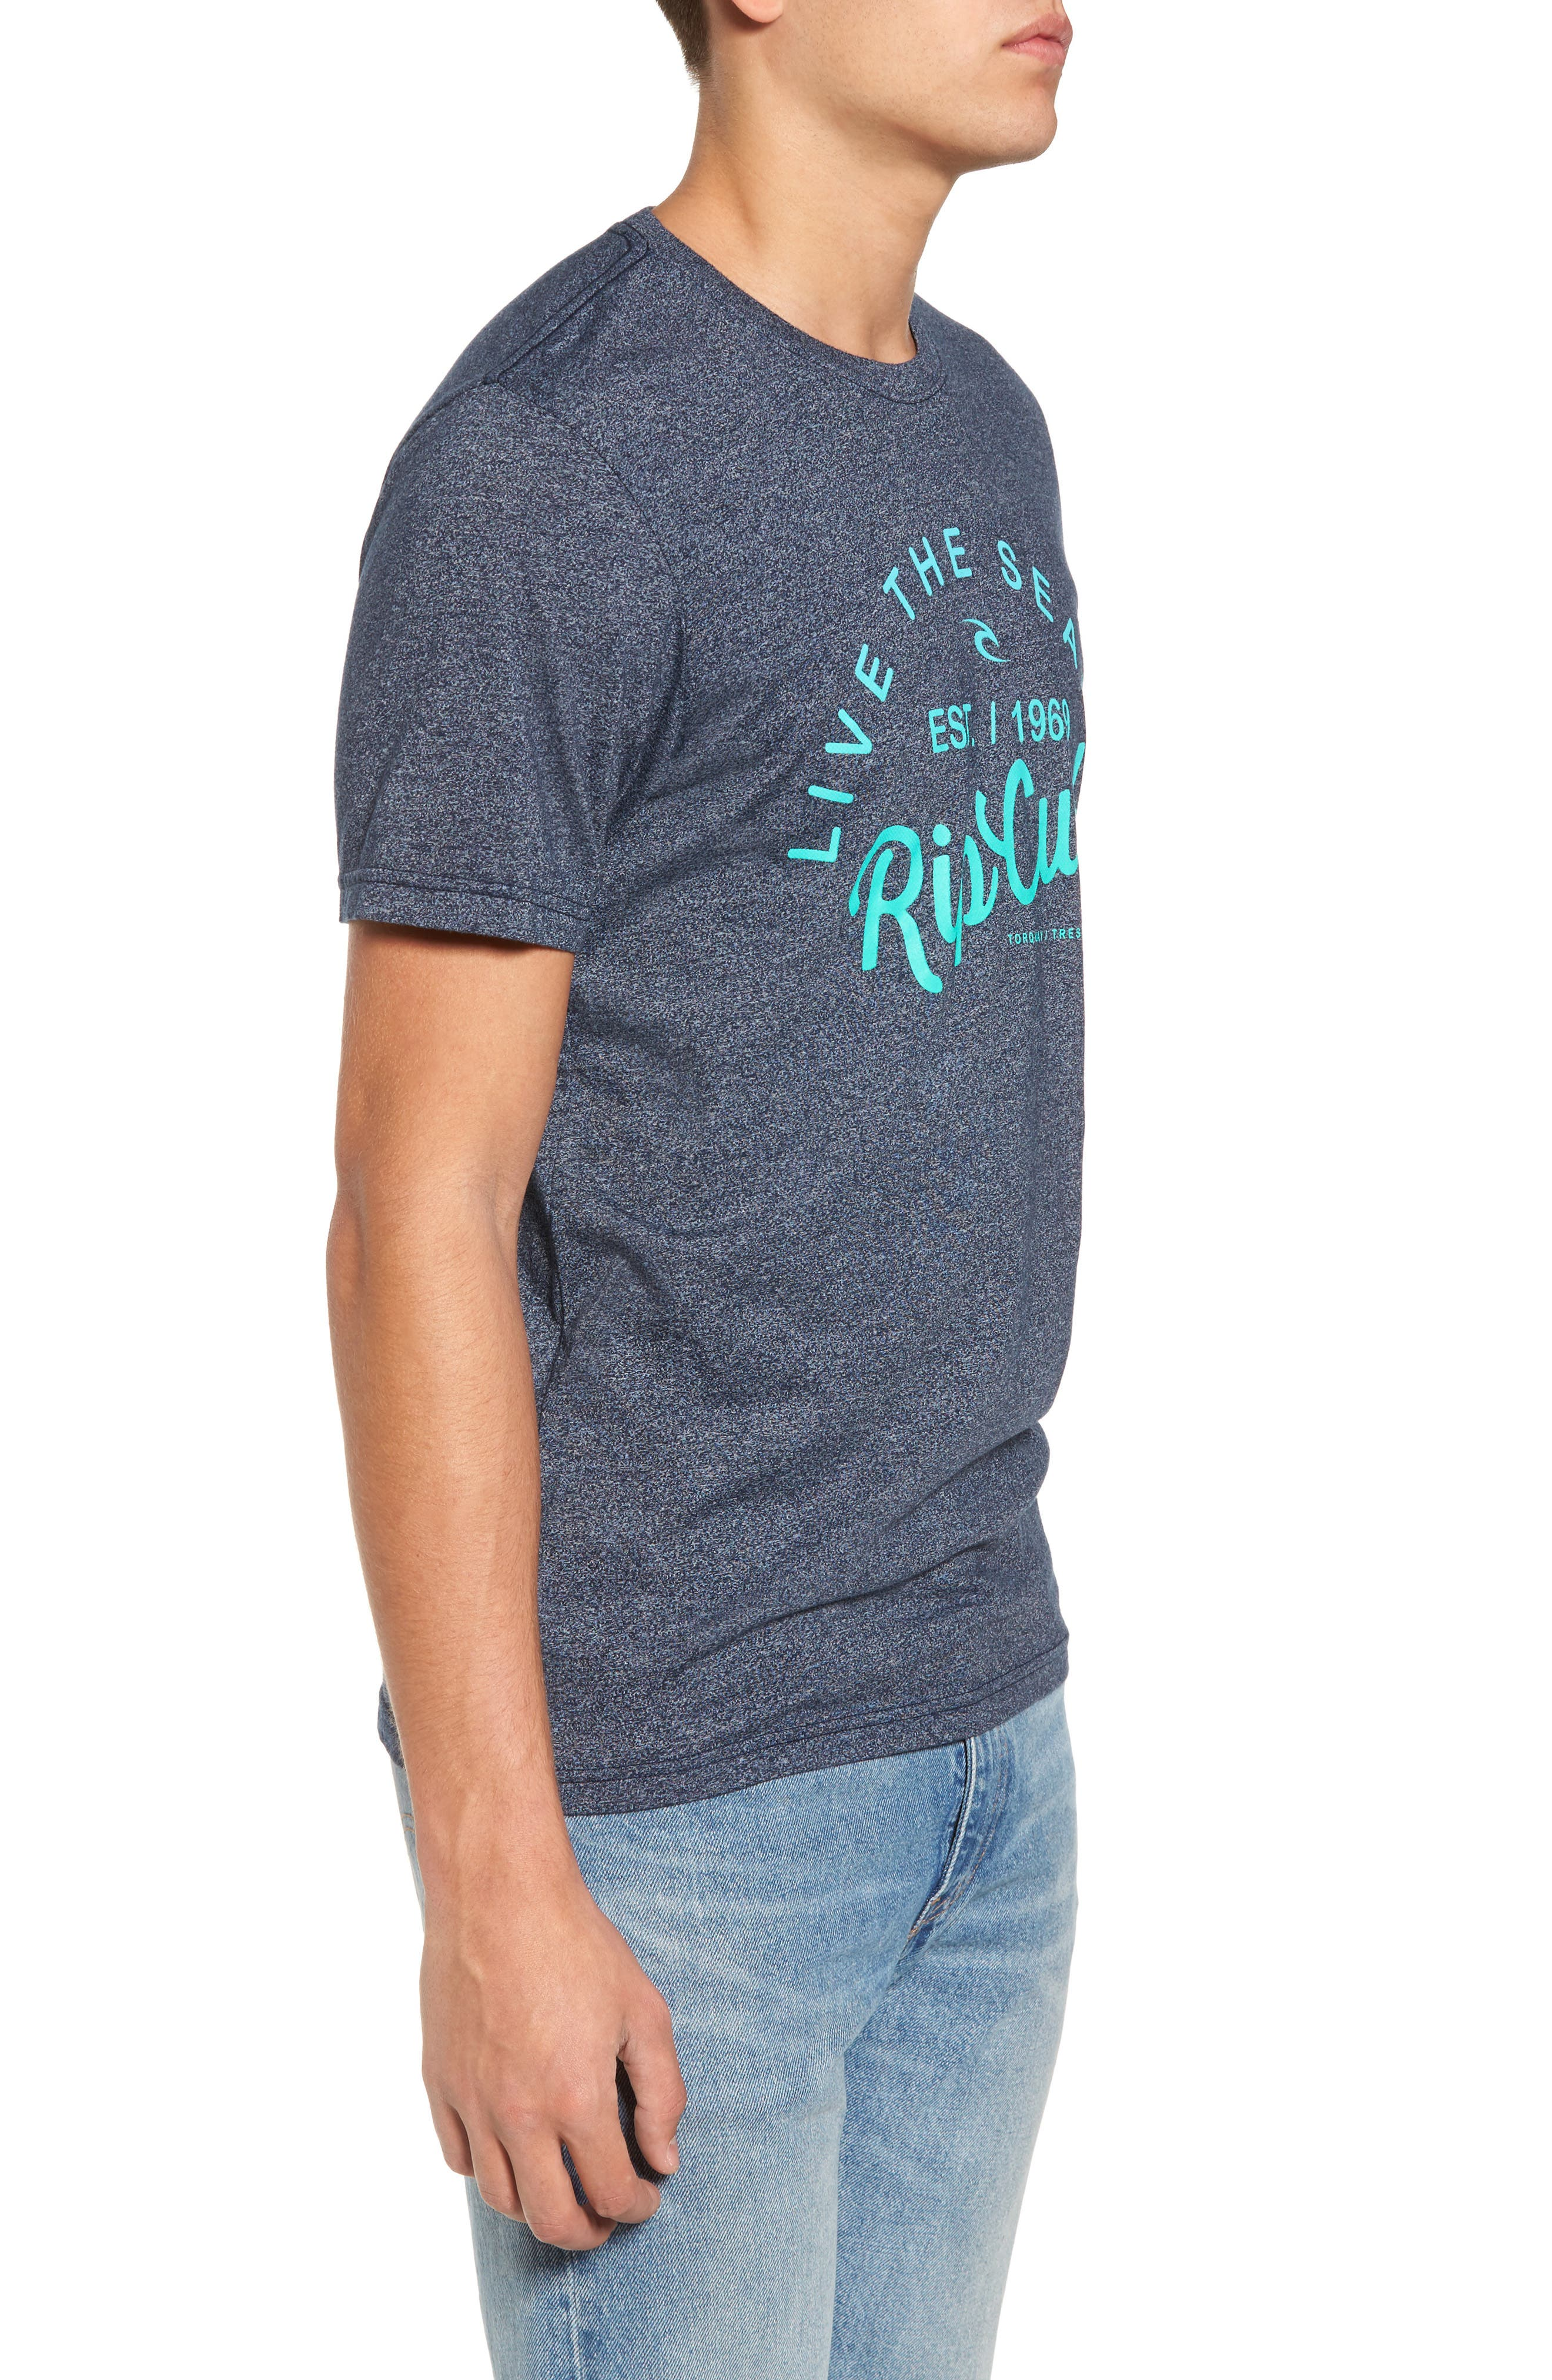 Alternate Image 3  - Rip Curl Shred City Short Sleeve T-Shirt